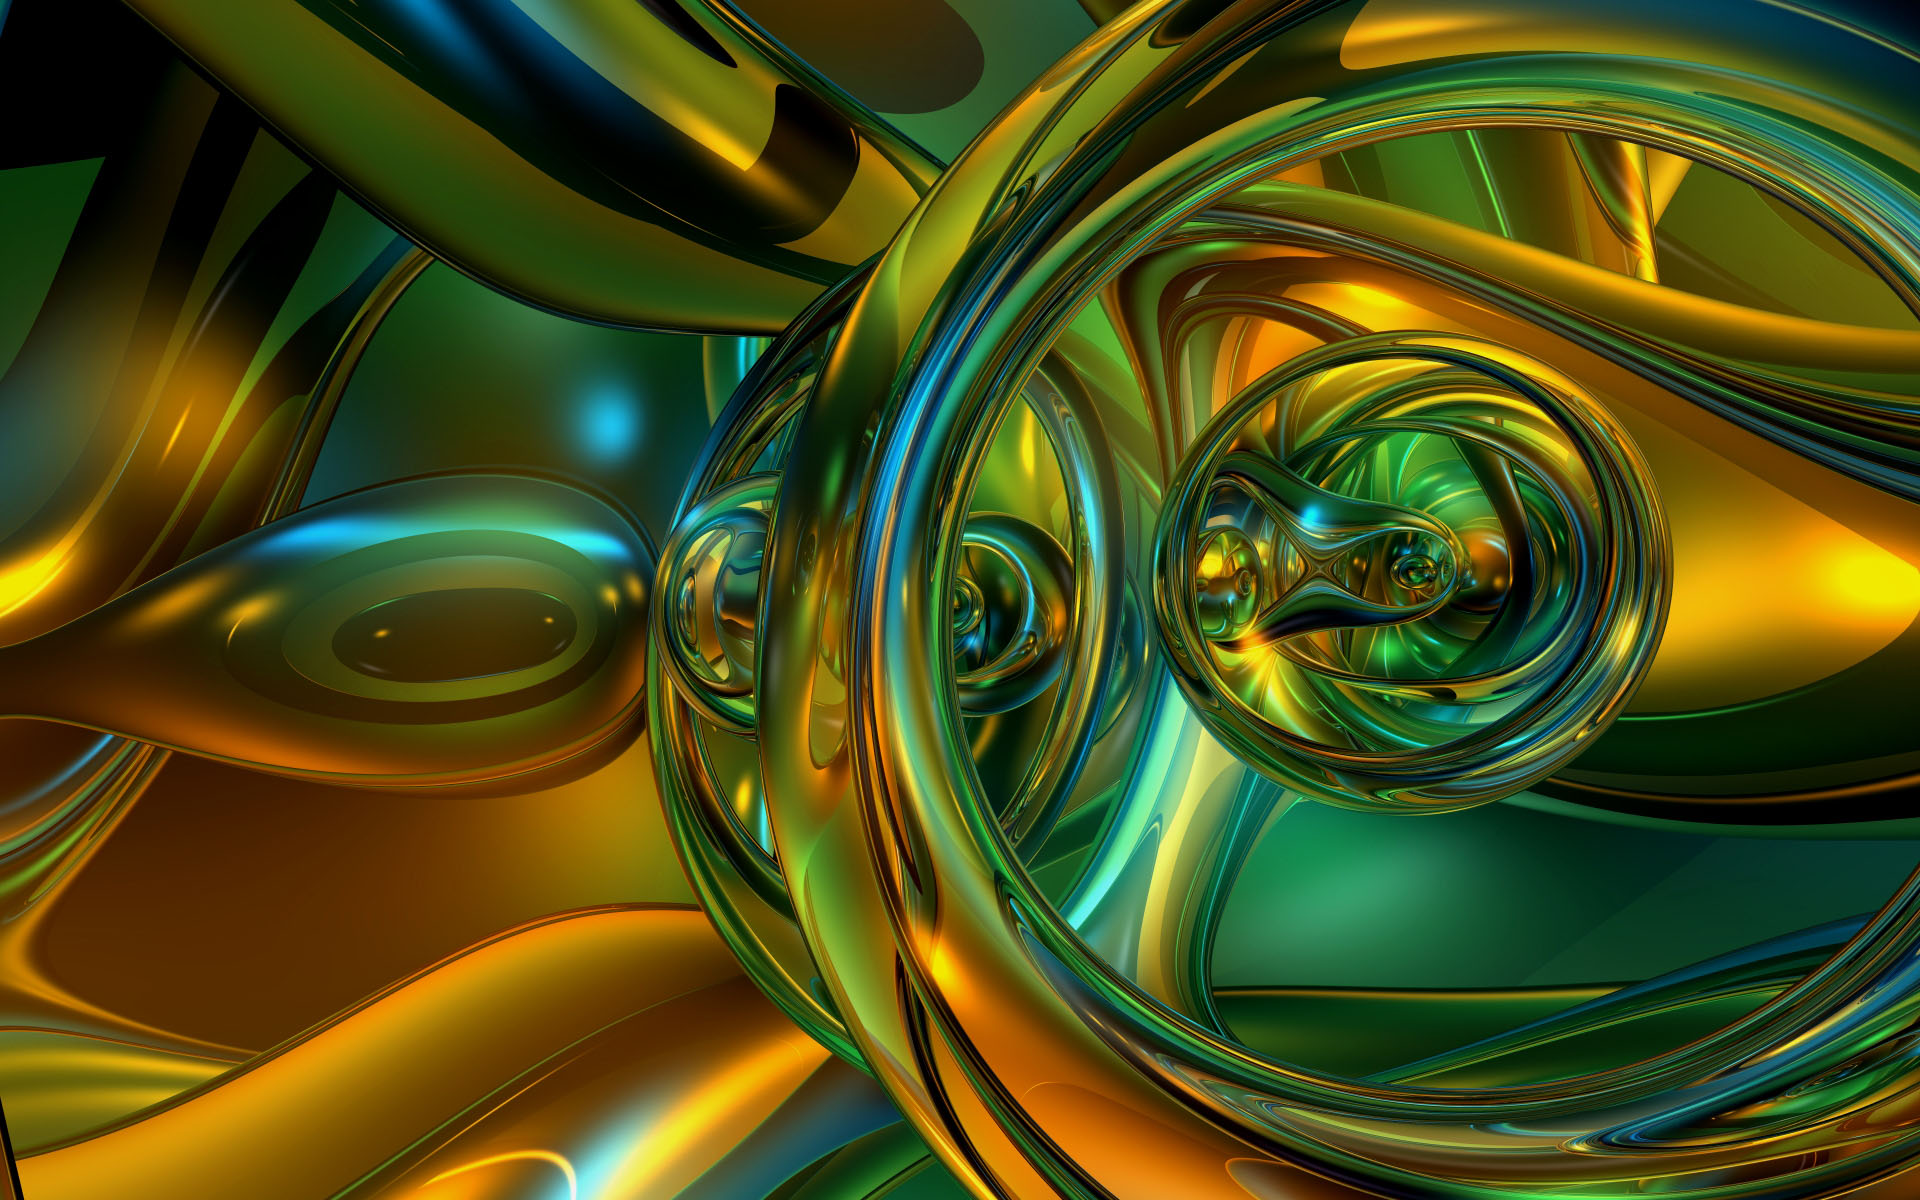 Wallpapers abstract 3d wallpapers